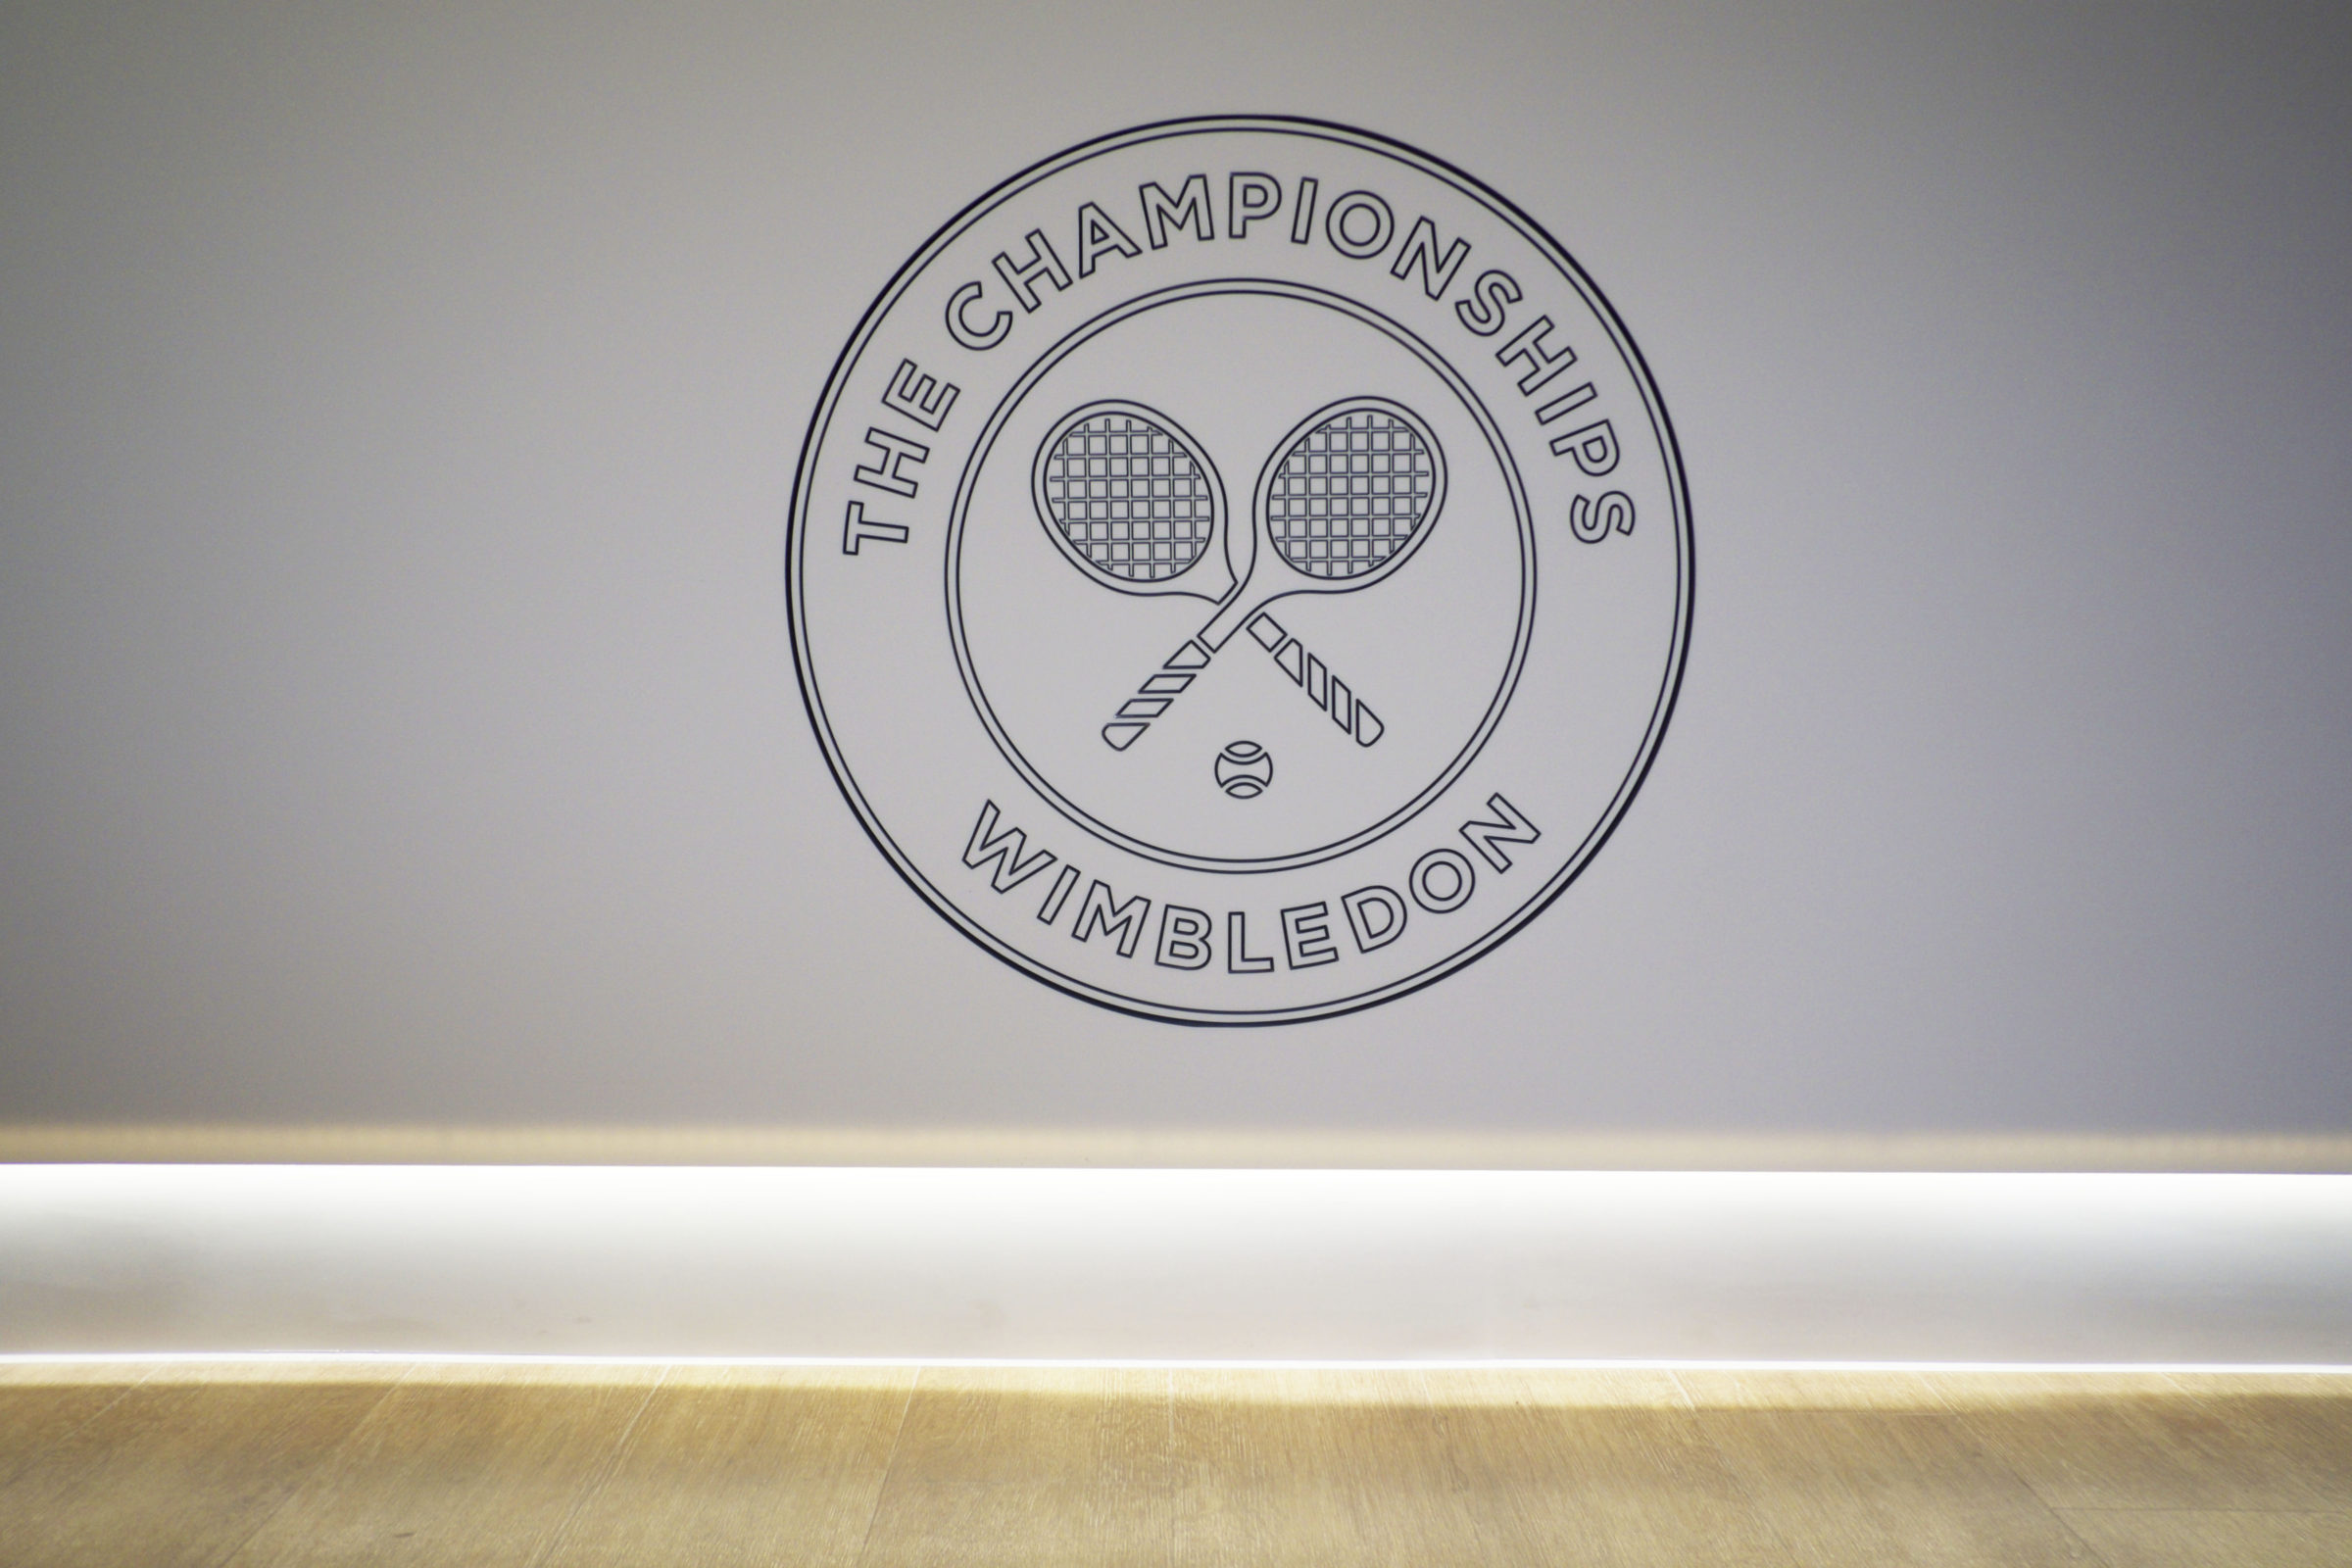 Joinery fit-out for The AELTC at Wimbledon Tennis Club